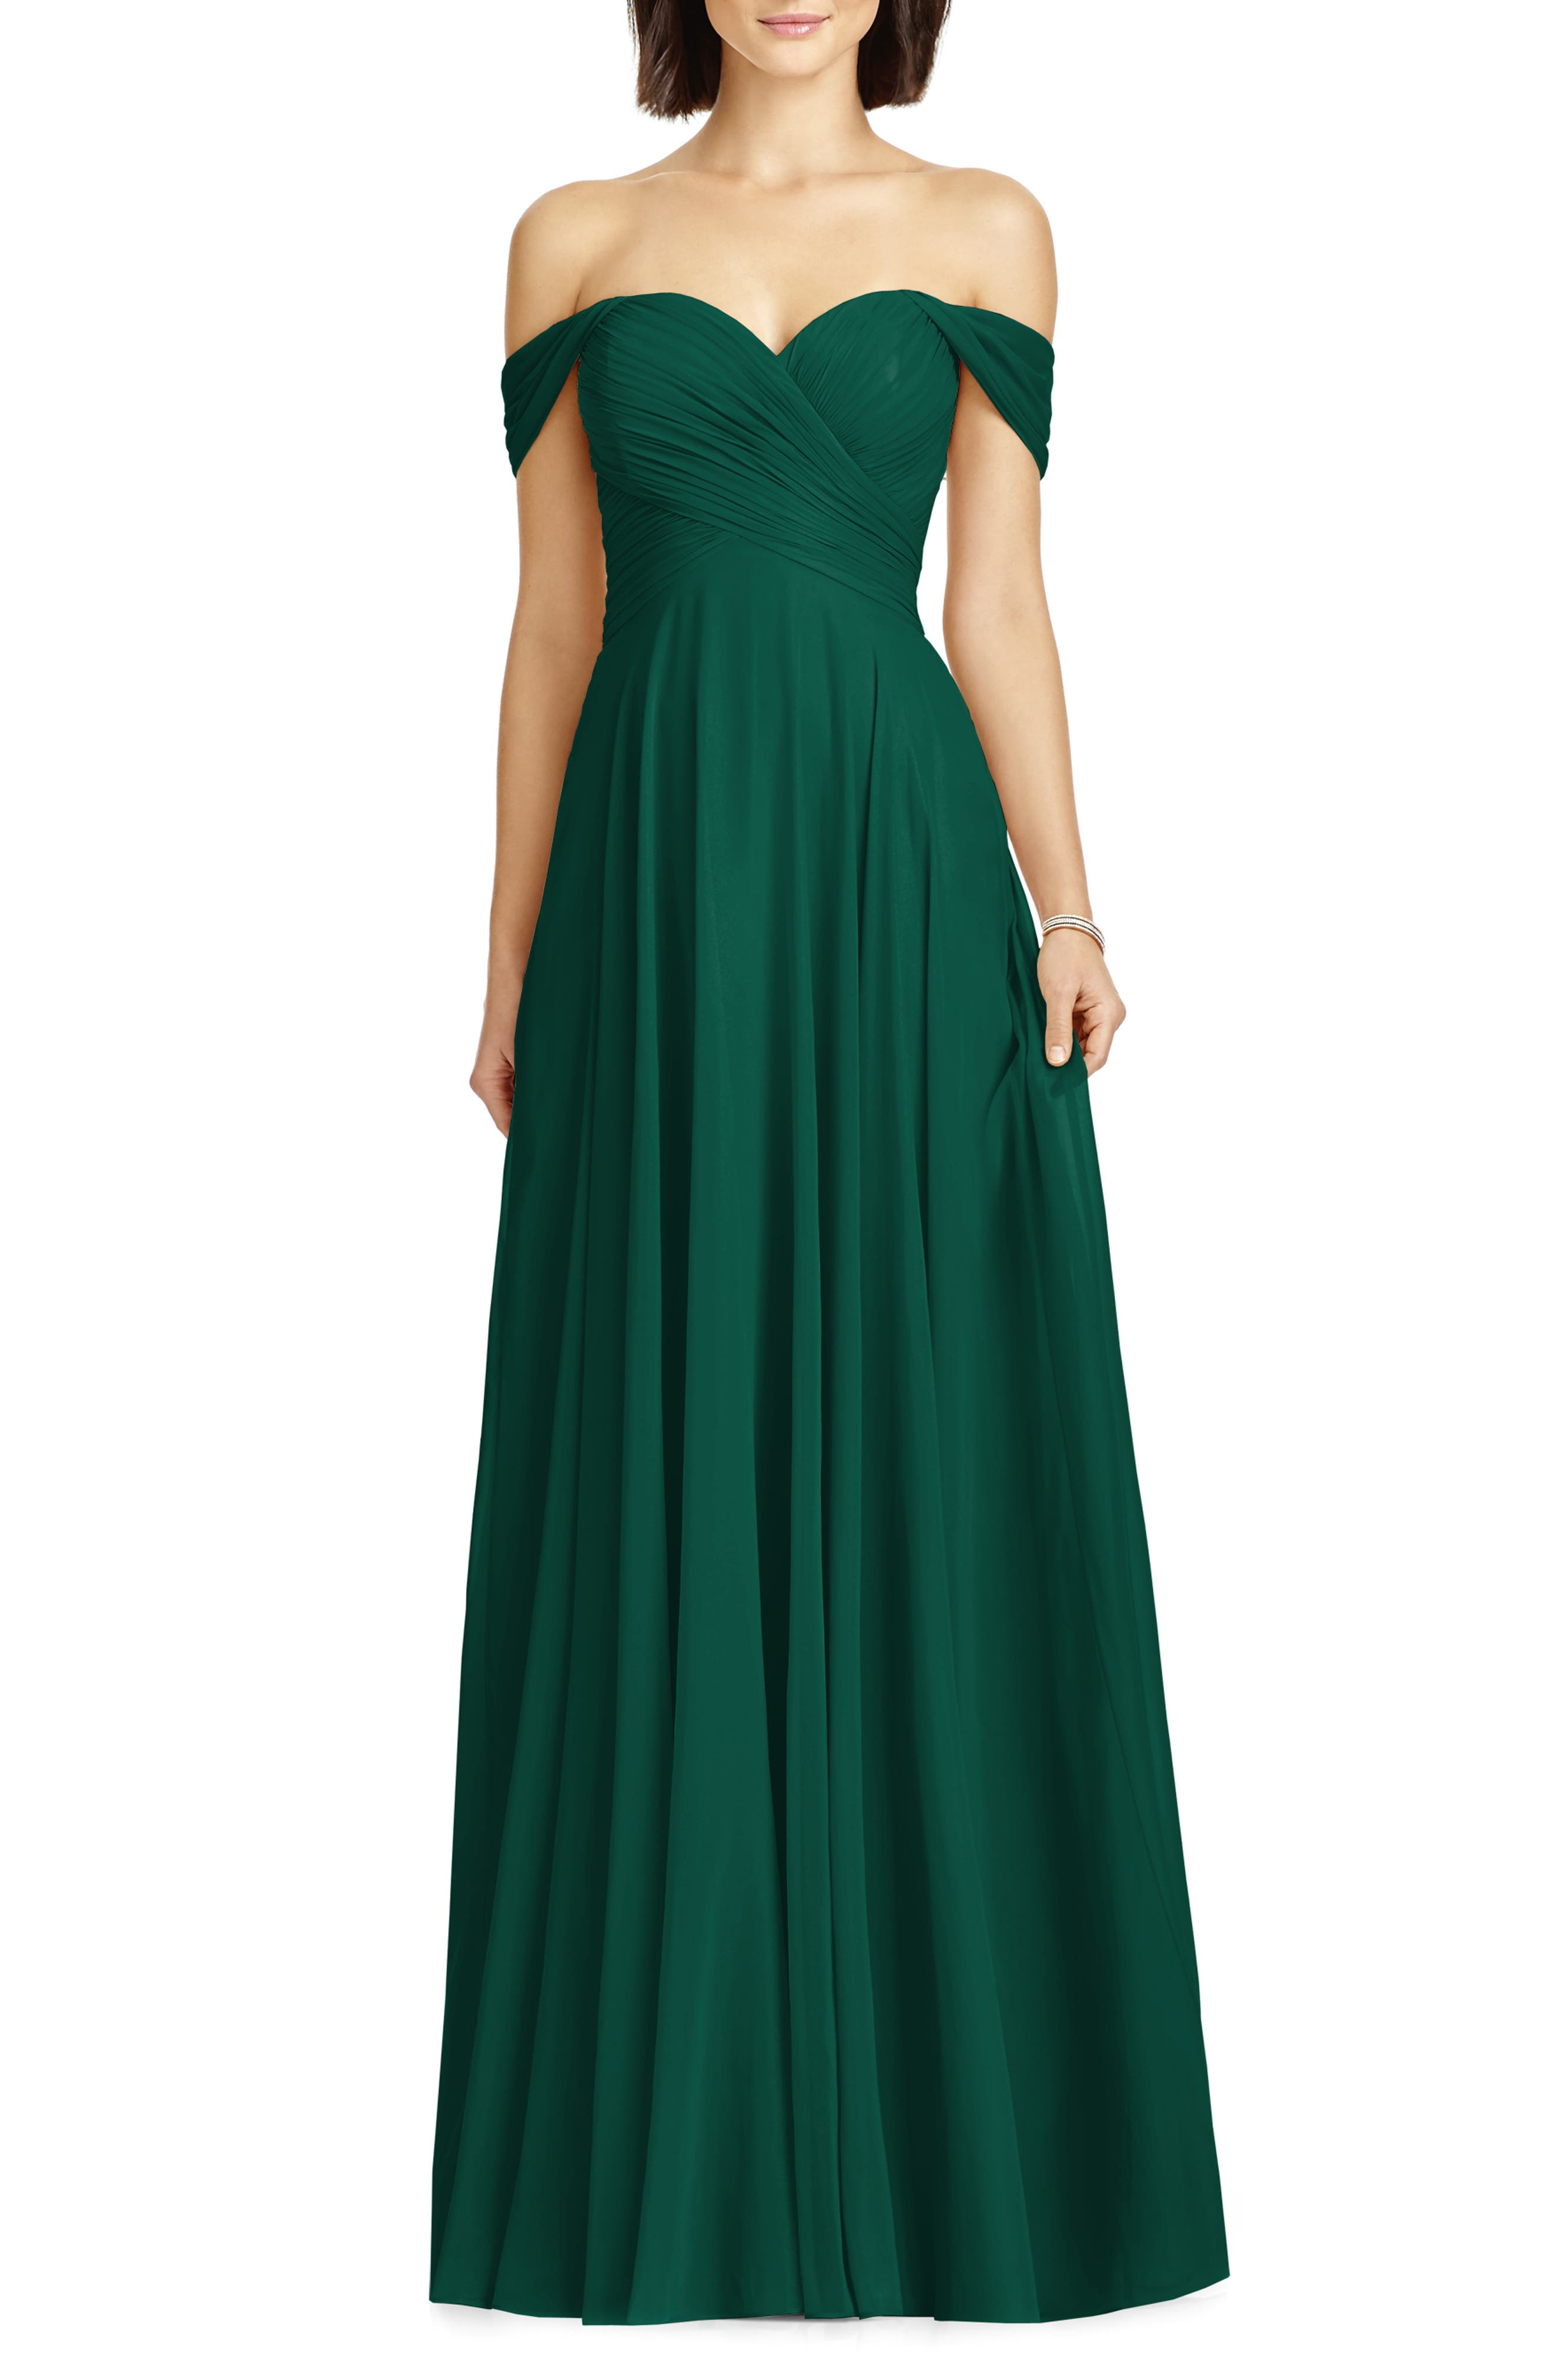 DESSY COLLECTION, Lux Ruched Off the Shoulder Chiffon Gown, Main thumbnail 1, color, HUNTER